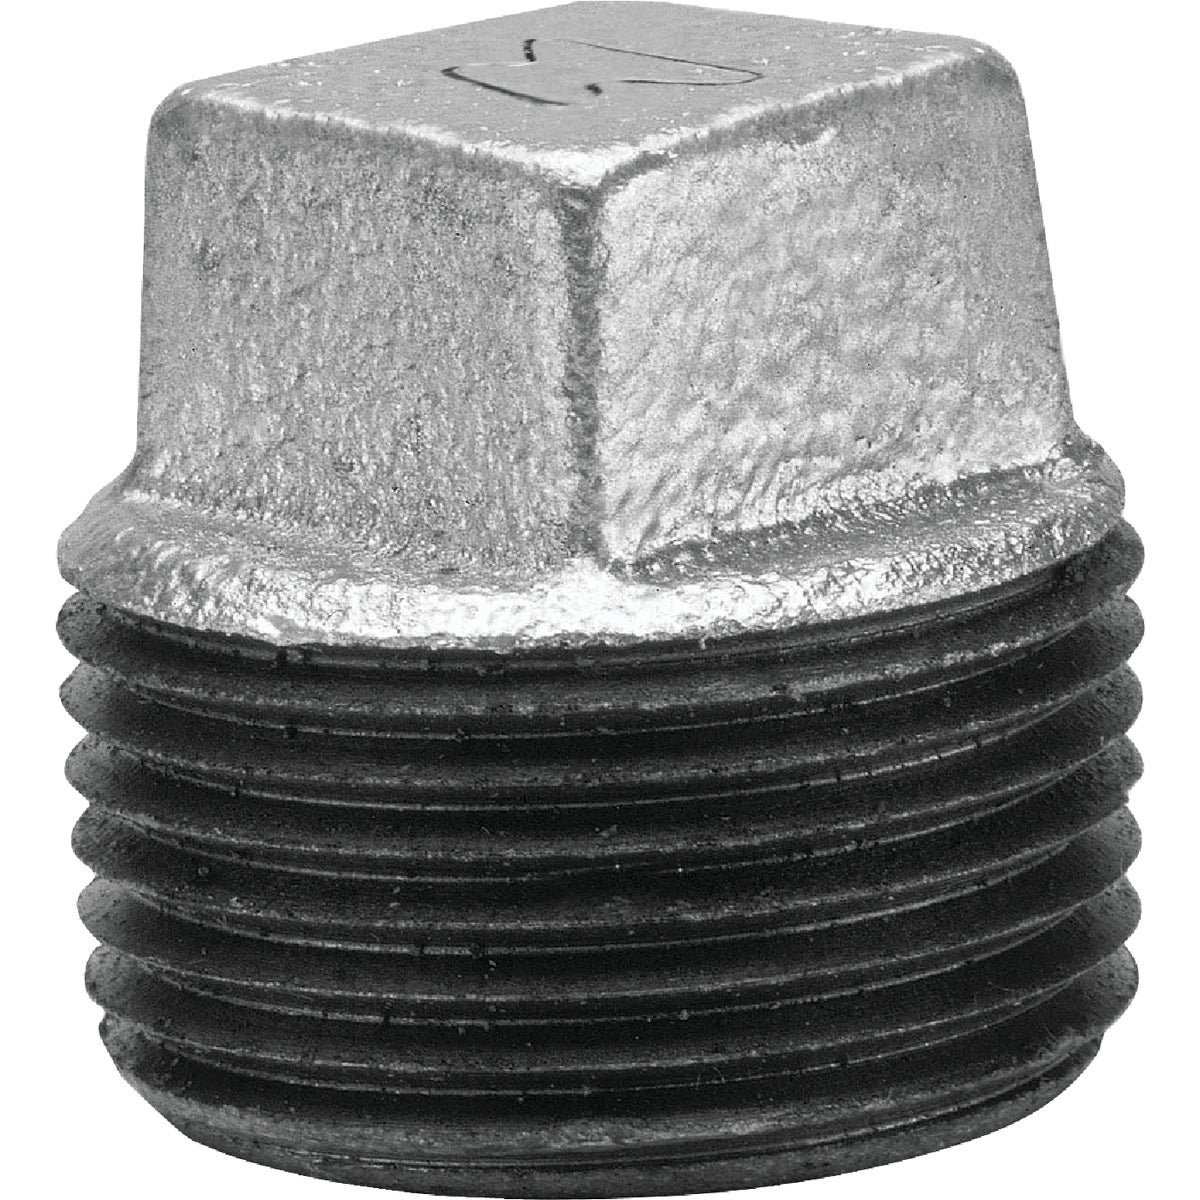 "3/4"" GALV SQ PLUG - 8700159901 by Anvil International"